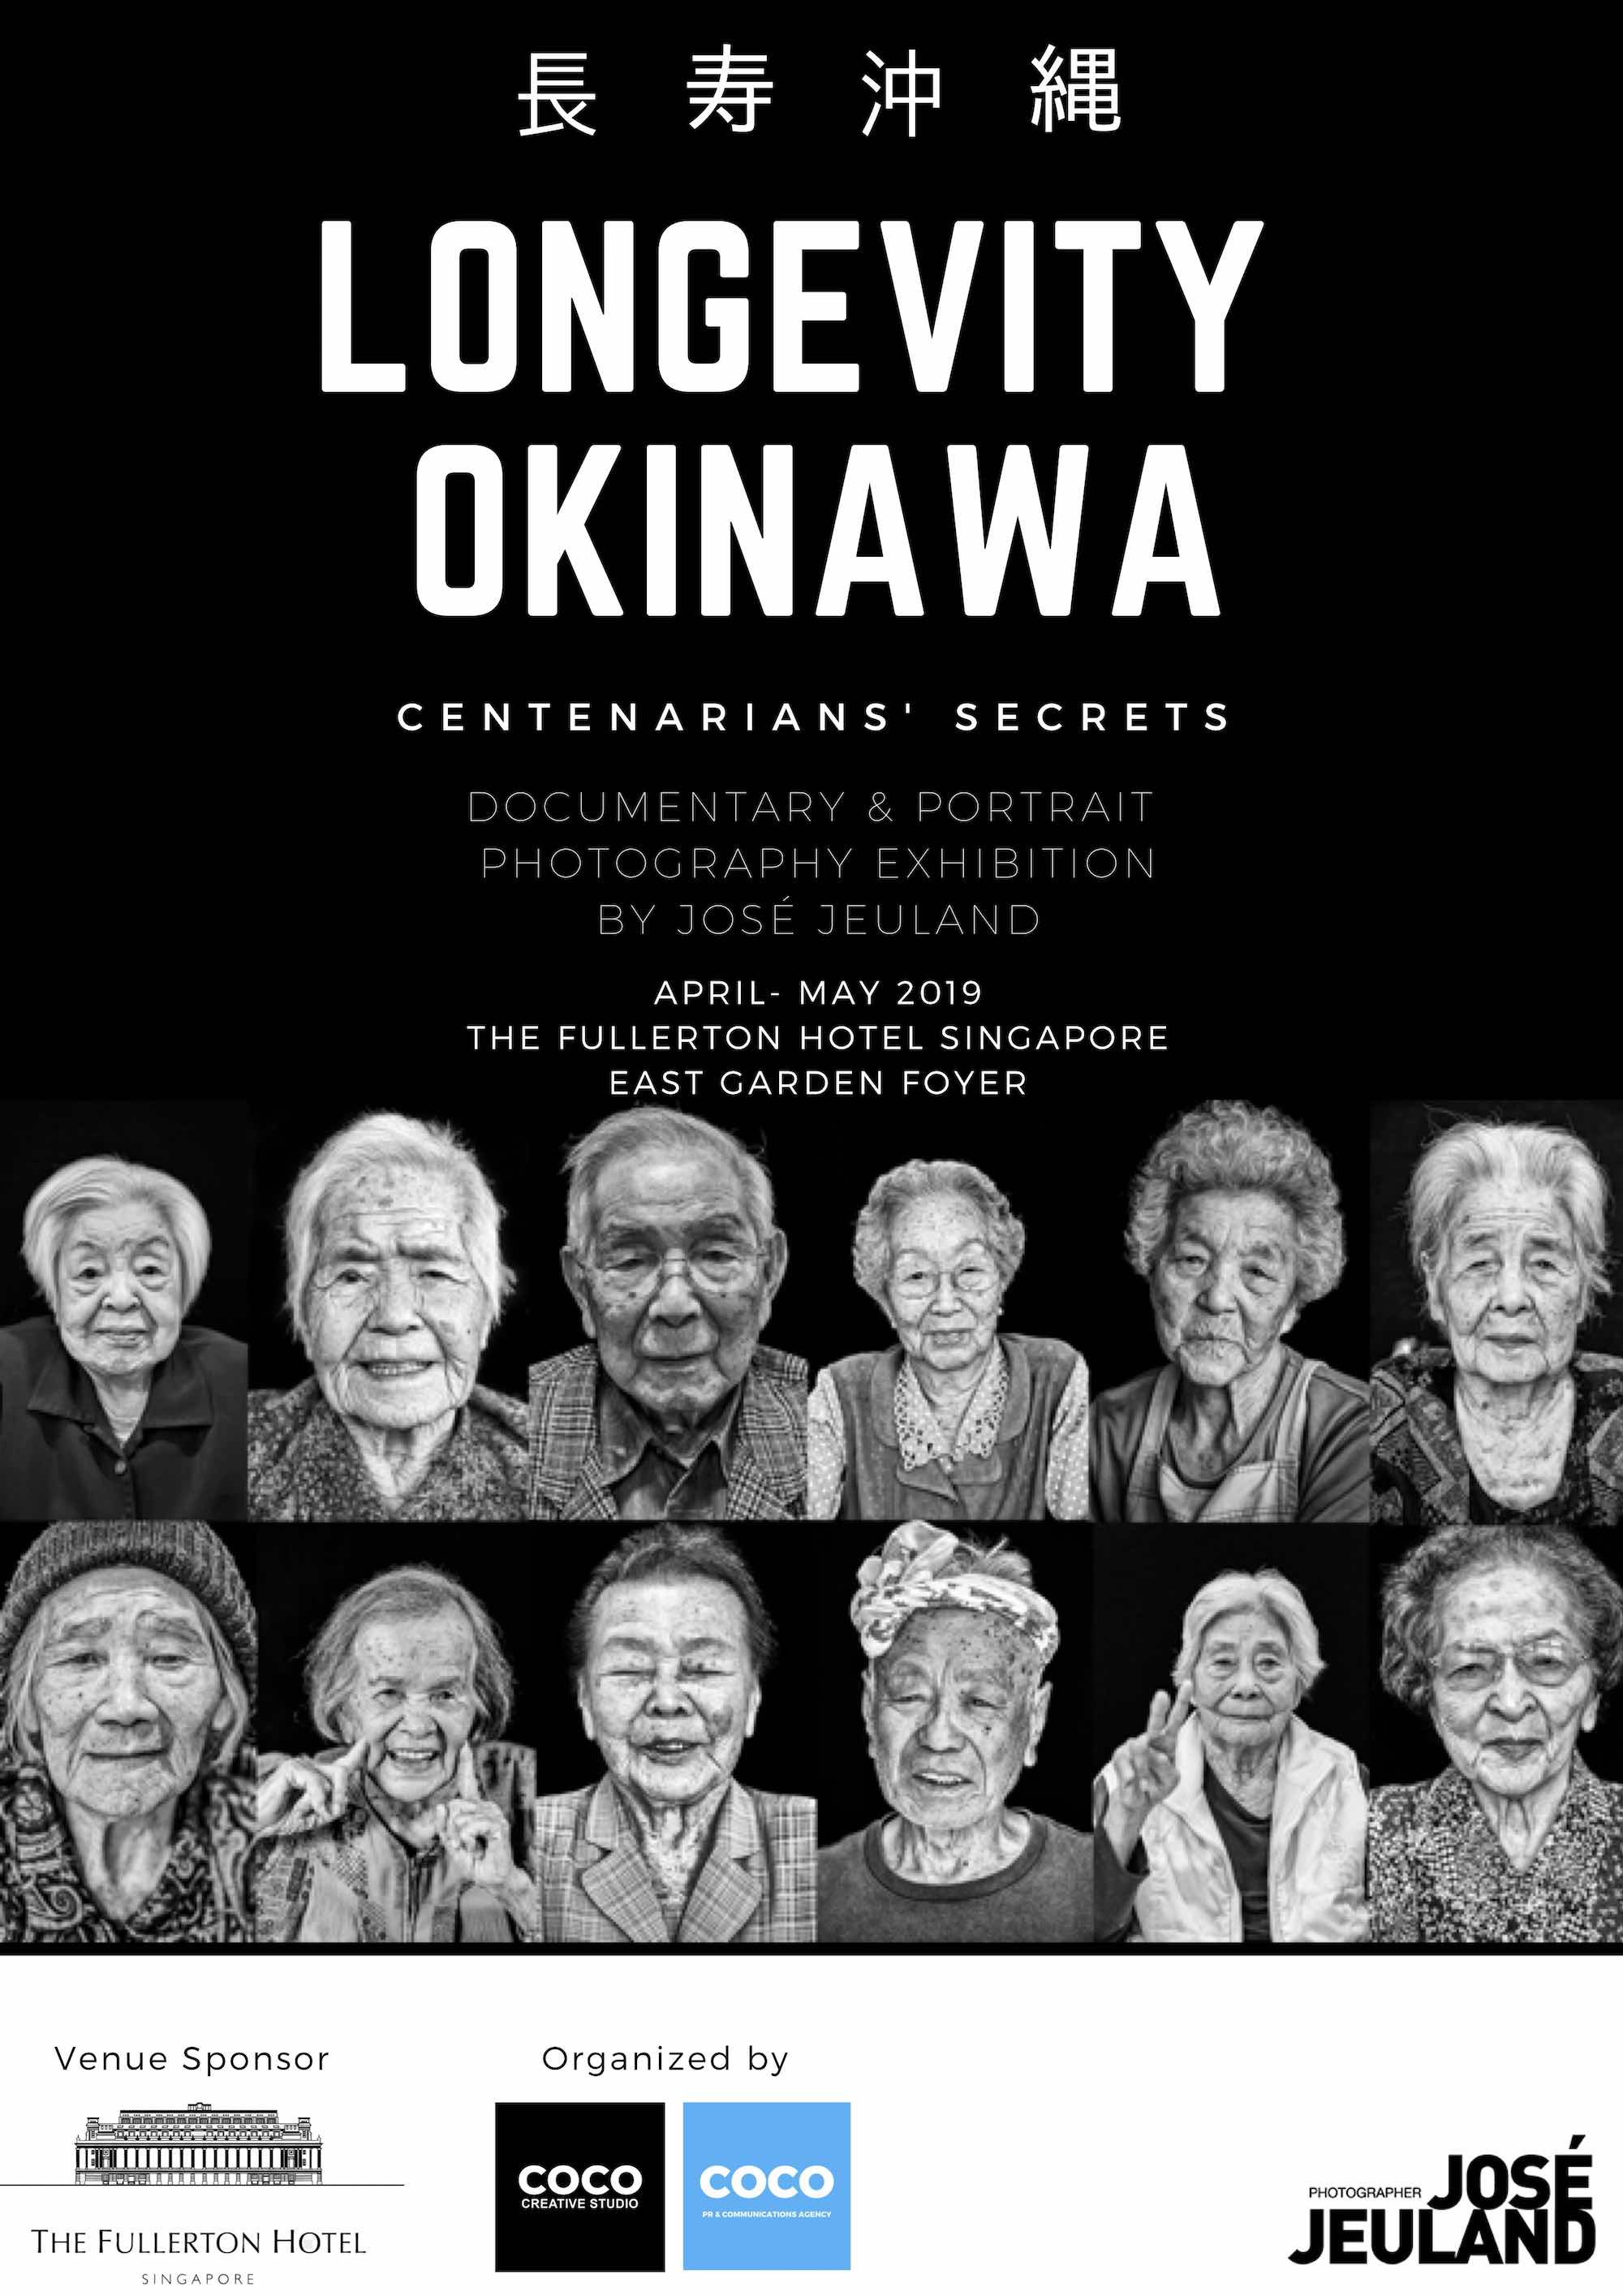 Okinawa Longevity photography exhibition jose jeuland singapore poster